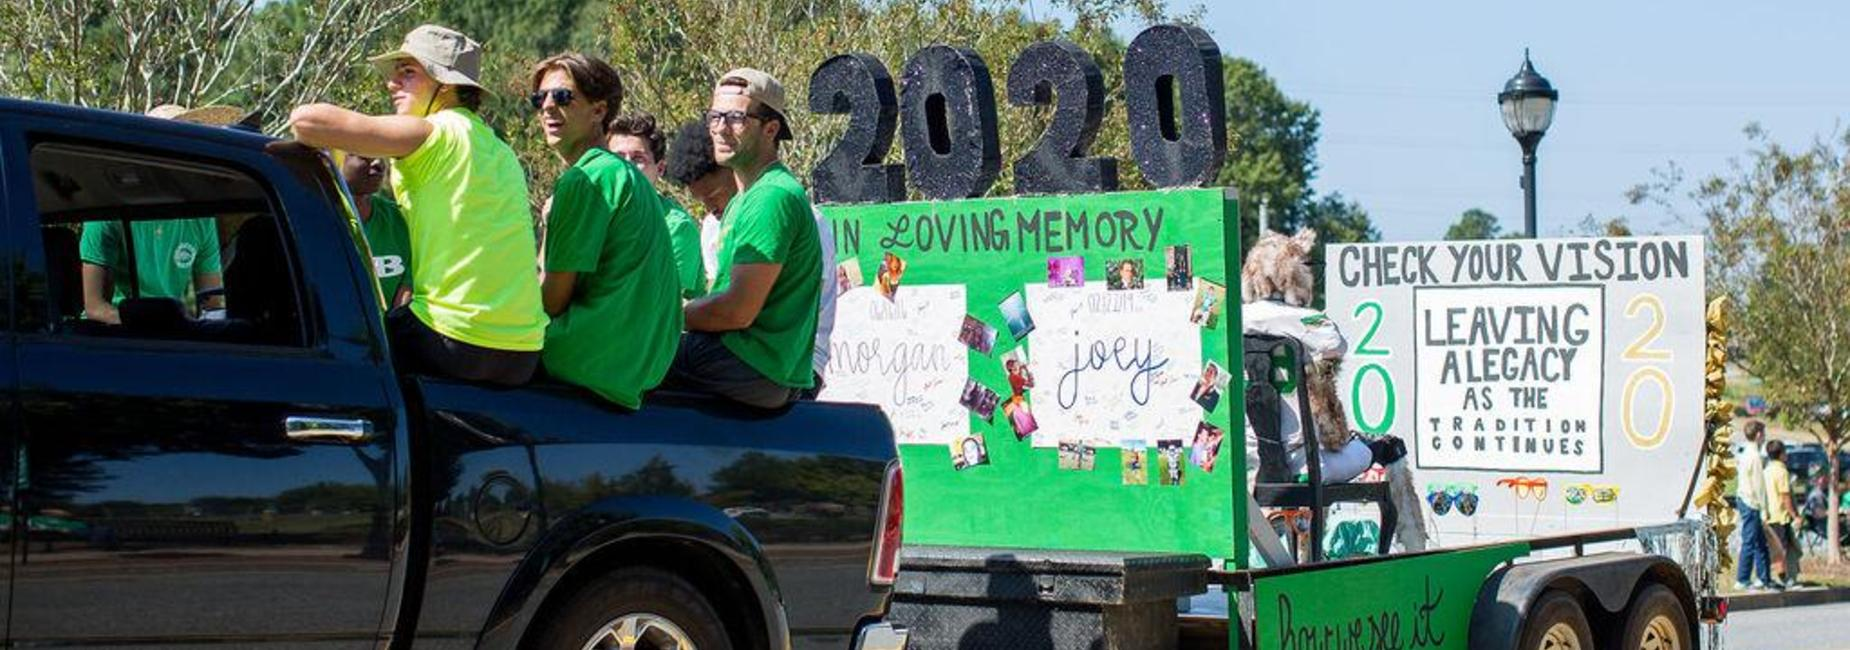 Class of 2020 Homecoming Float